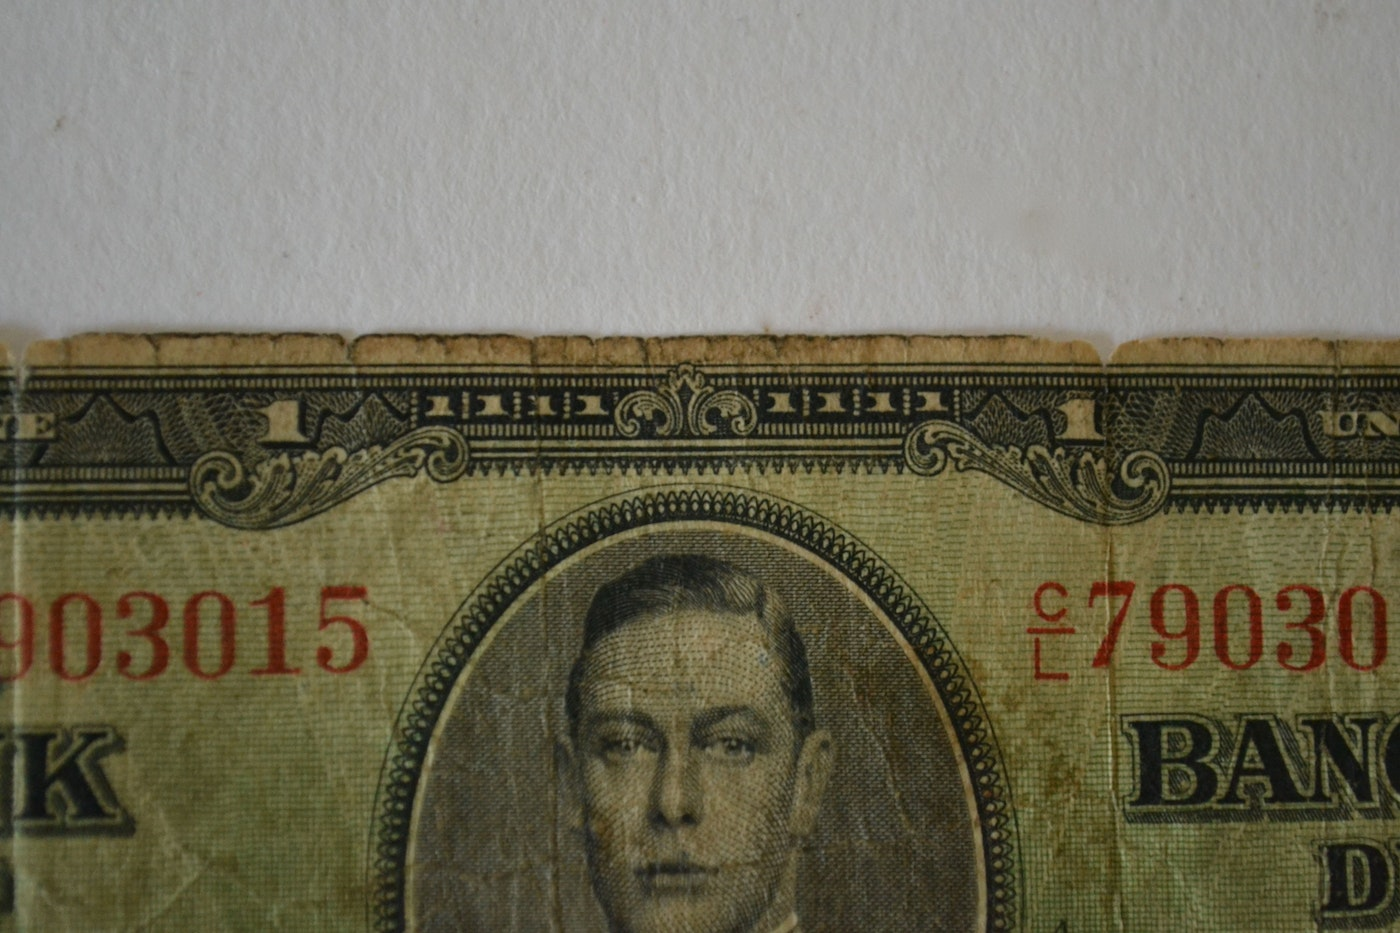 1930s Currency Ebth